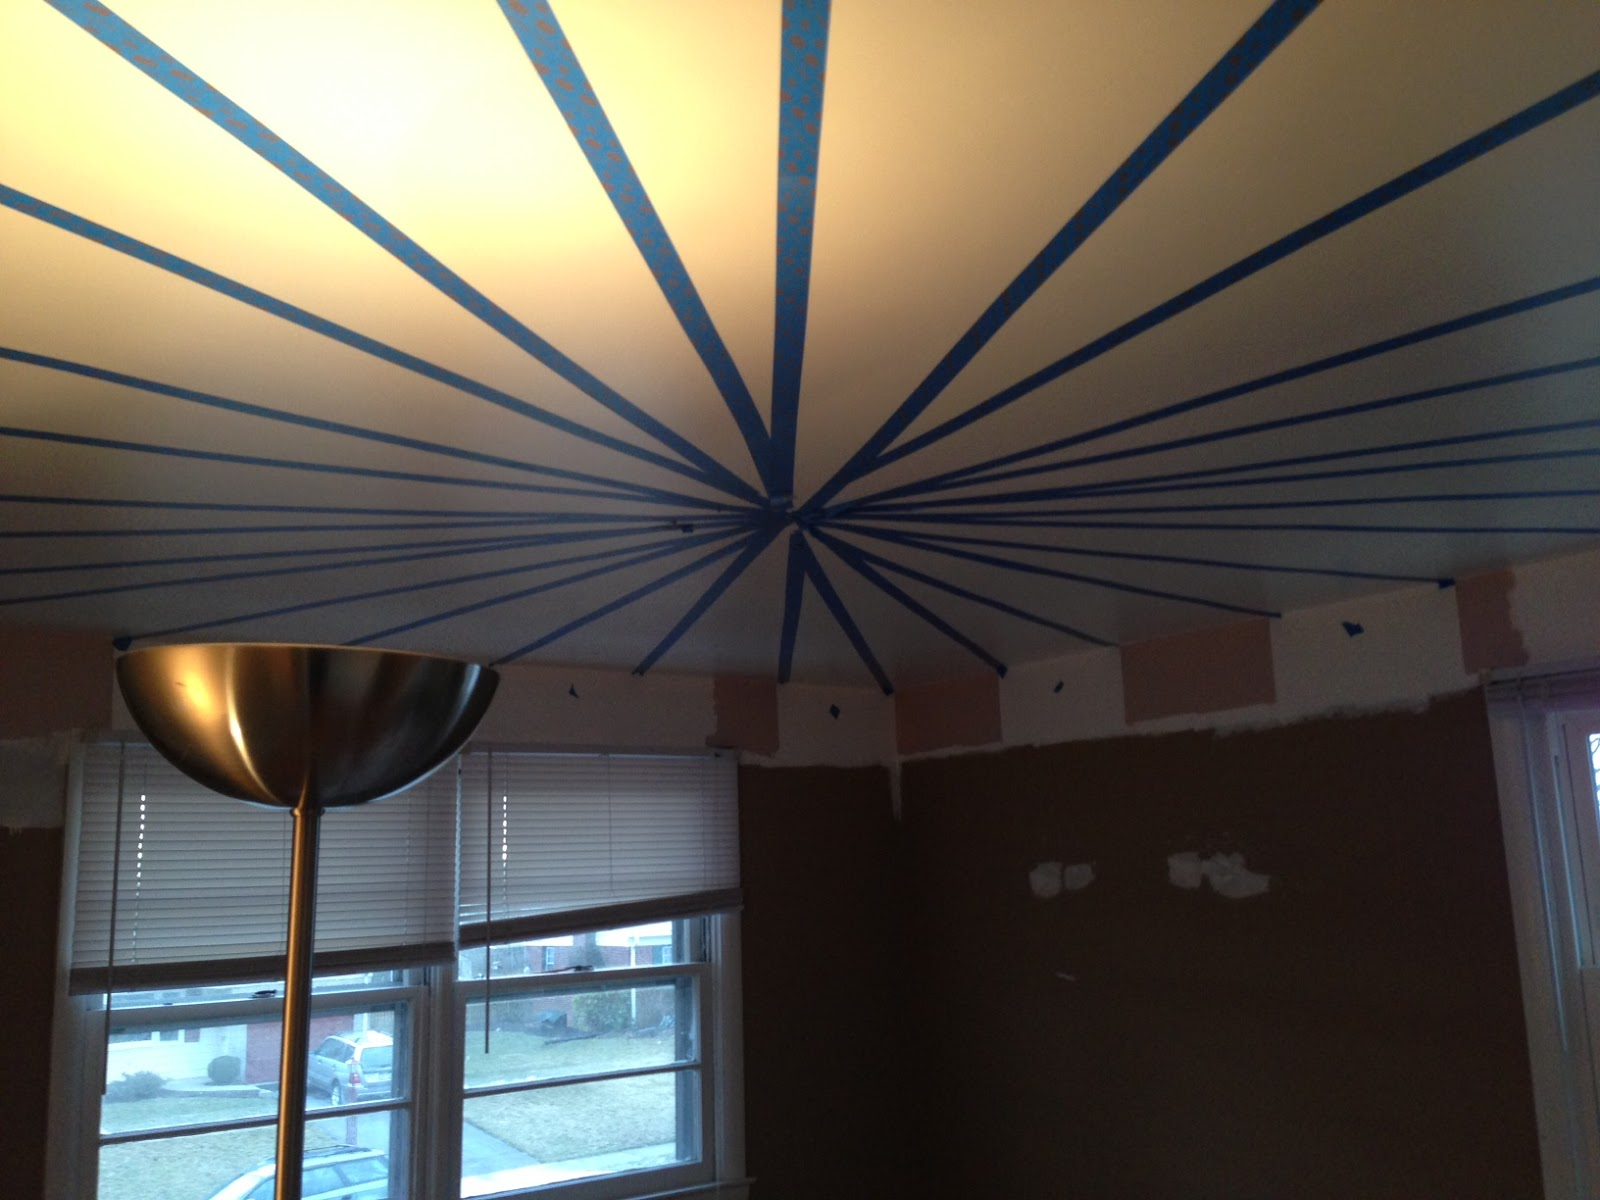 My Mamalicious Journey: DIY Circus Tent Ceiling Tutorial